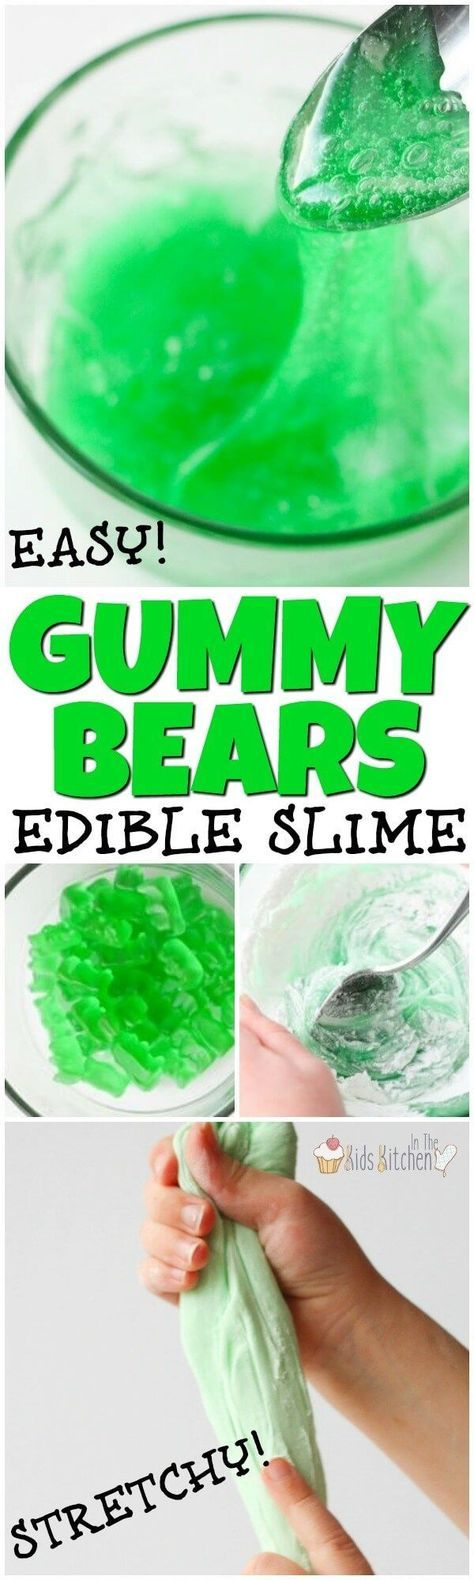 Ooey, gooey, stretchy, and squishy - kids will go wild over this awesome edible slime recipe made from......gummy bears!! Safe sensory play for all ages!